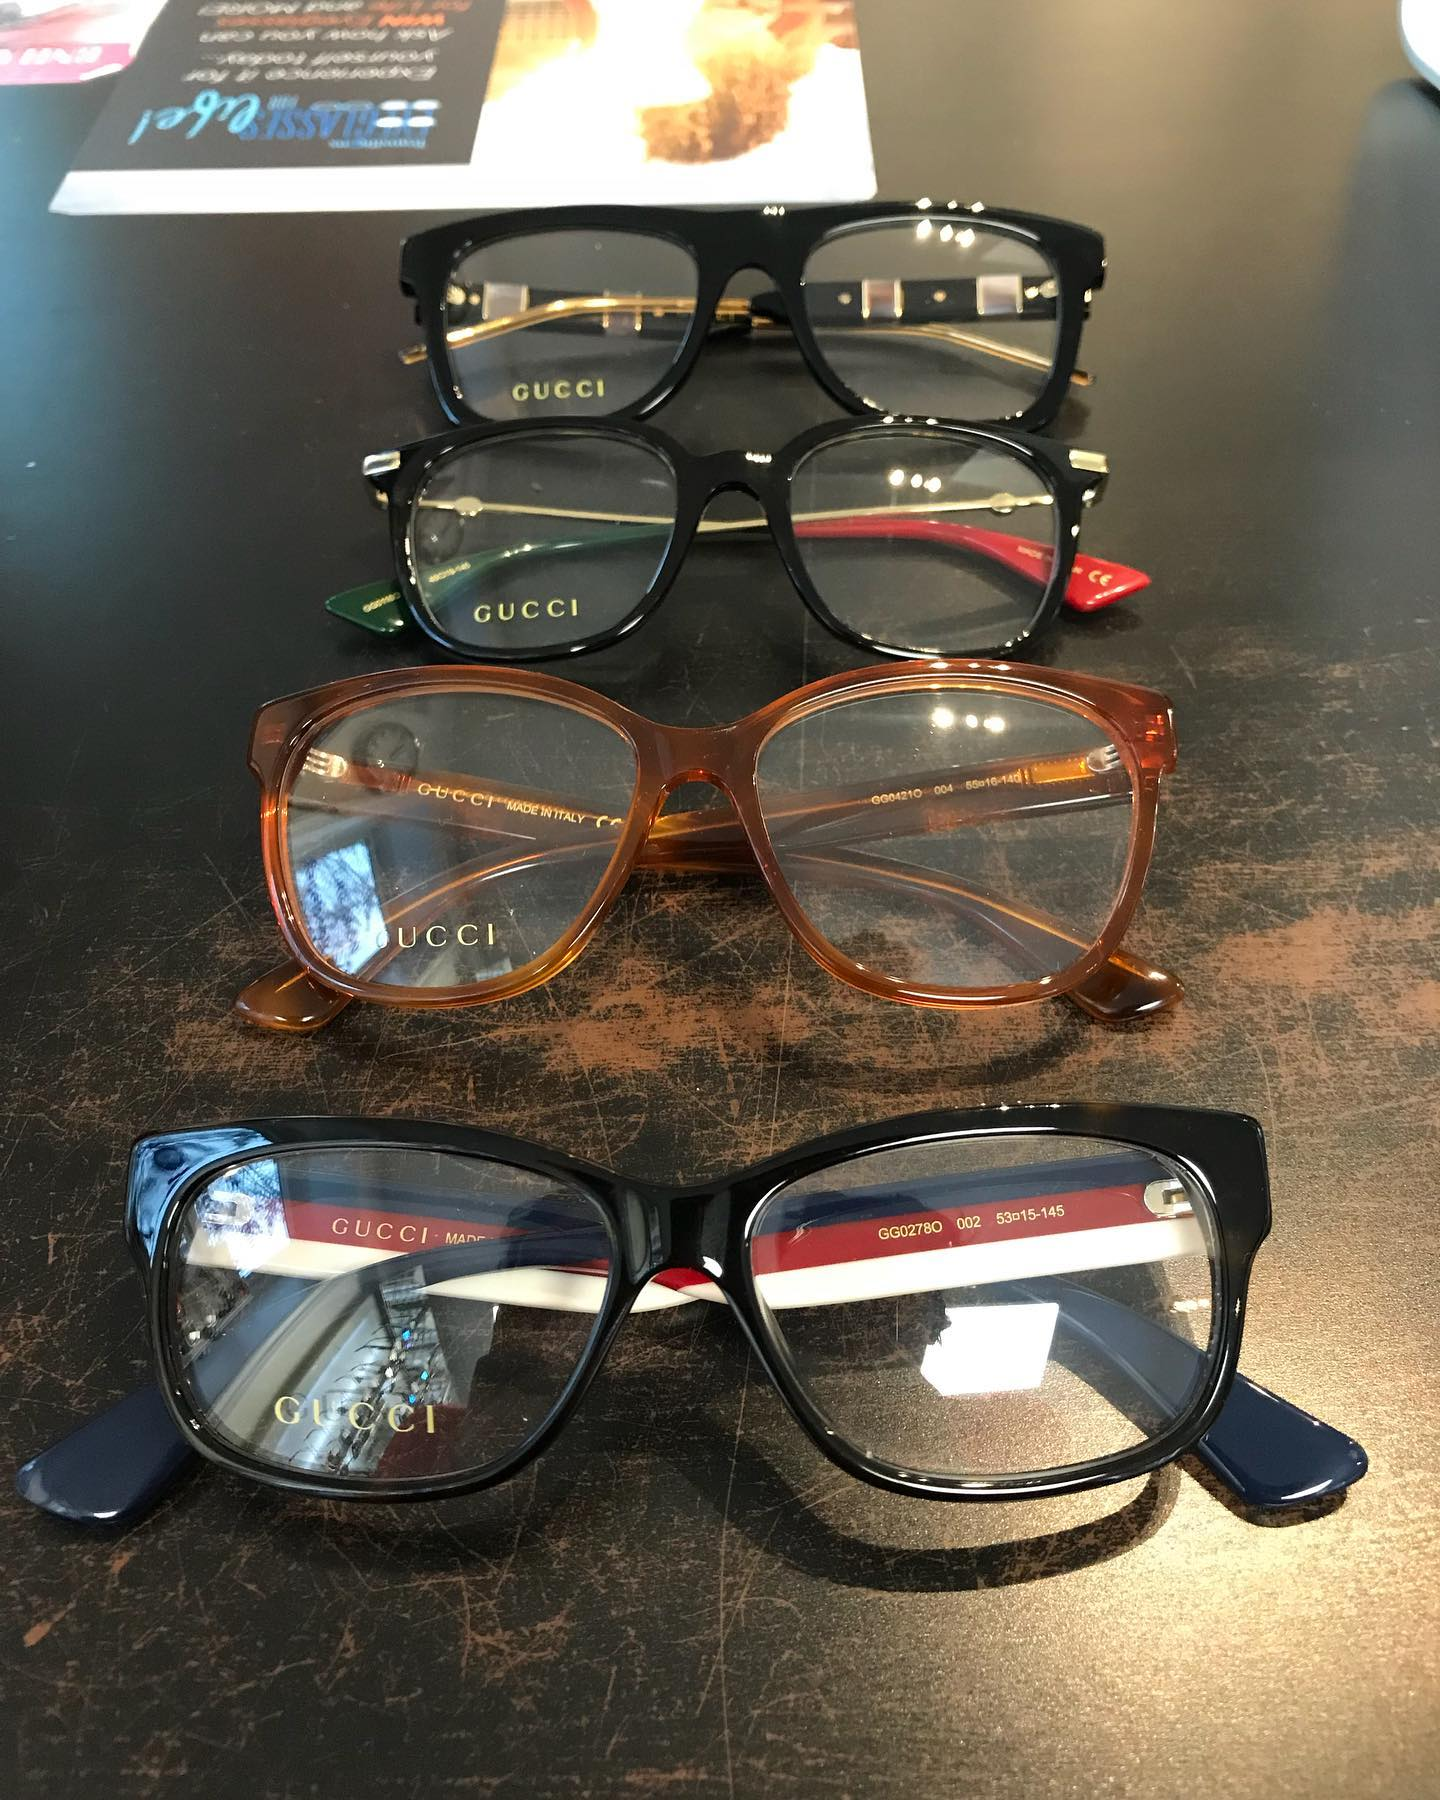 @gucci has some perfect frames to add a little bling to your every day look! Simple from the front, and bold statement on the side! Which ones are your favourite? #eyepractice #framefriday #newframes #rockwoodoptometrist #guelphoptometrist #rockwoodoptometry #guelphoptometry #sparkley